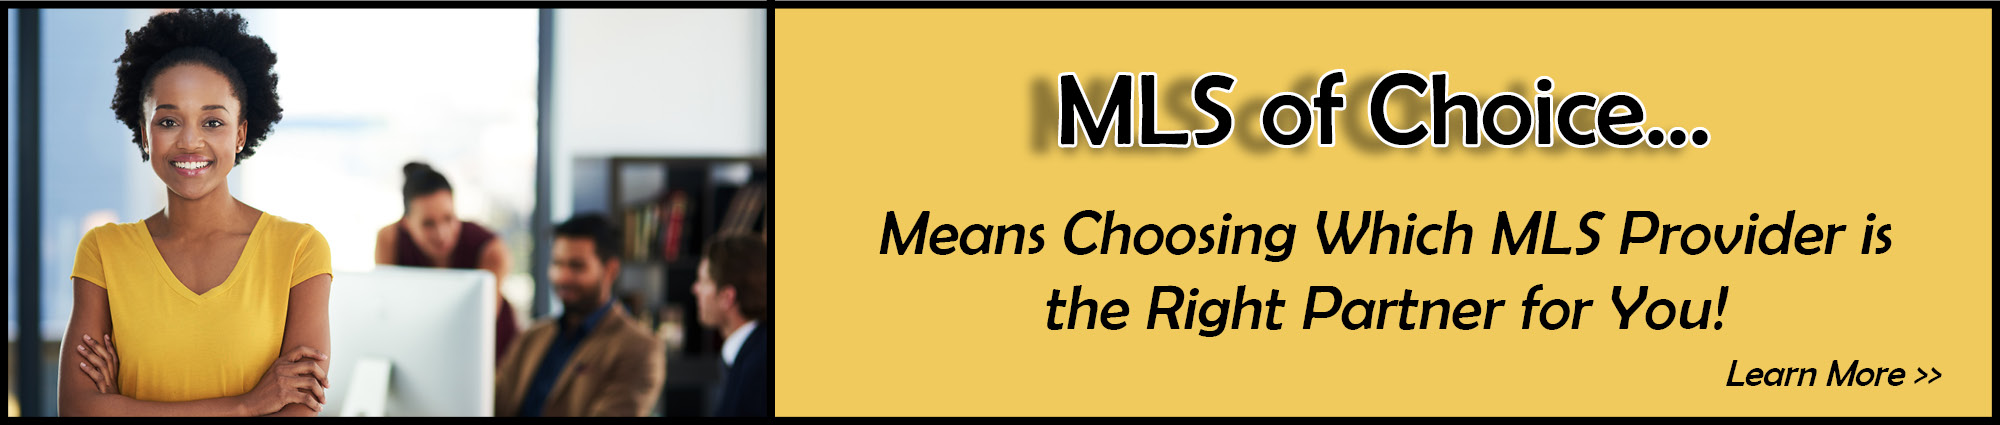 MLS of Choice